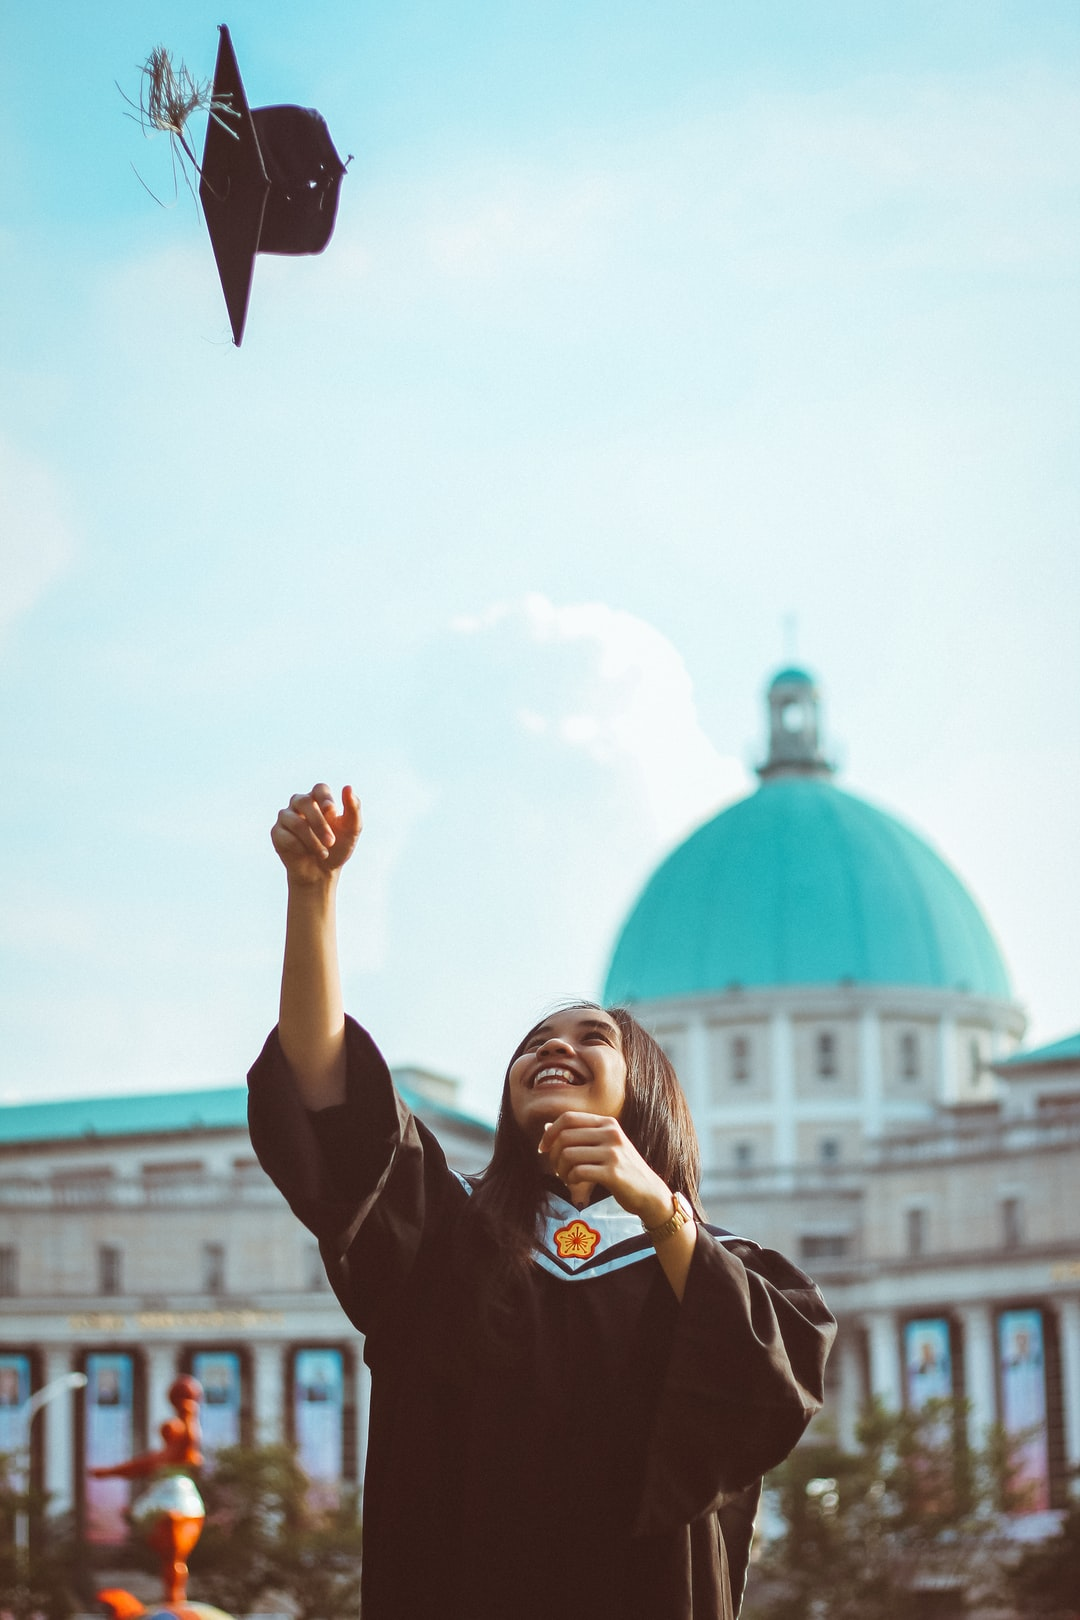 Woman graduate smiles as she throws cap up in the air with Asia Museum of Modern Art in background